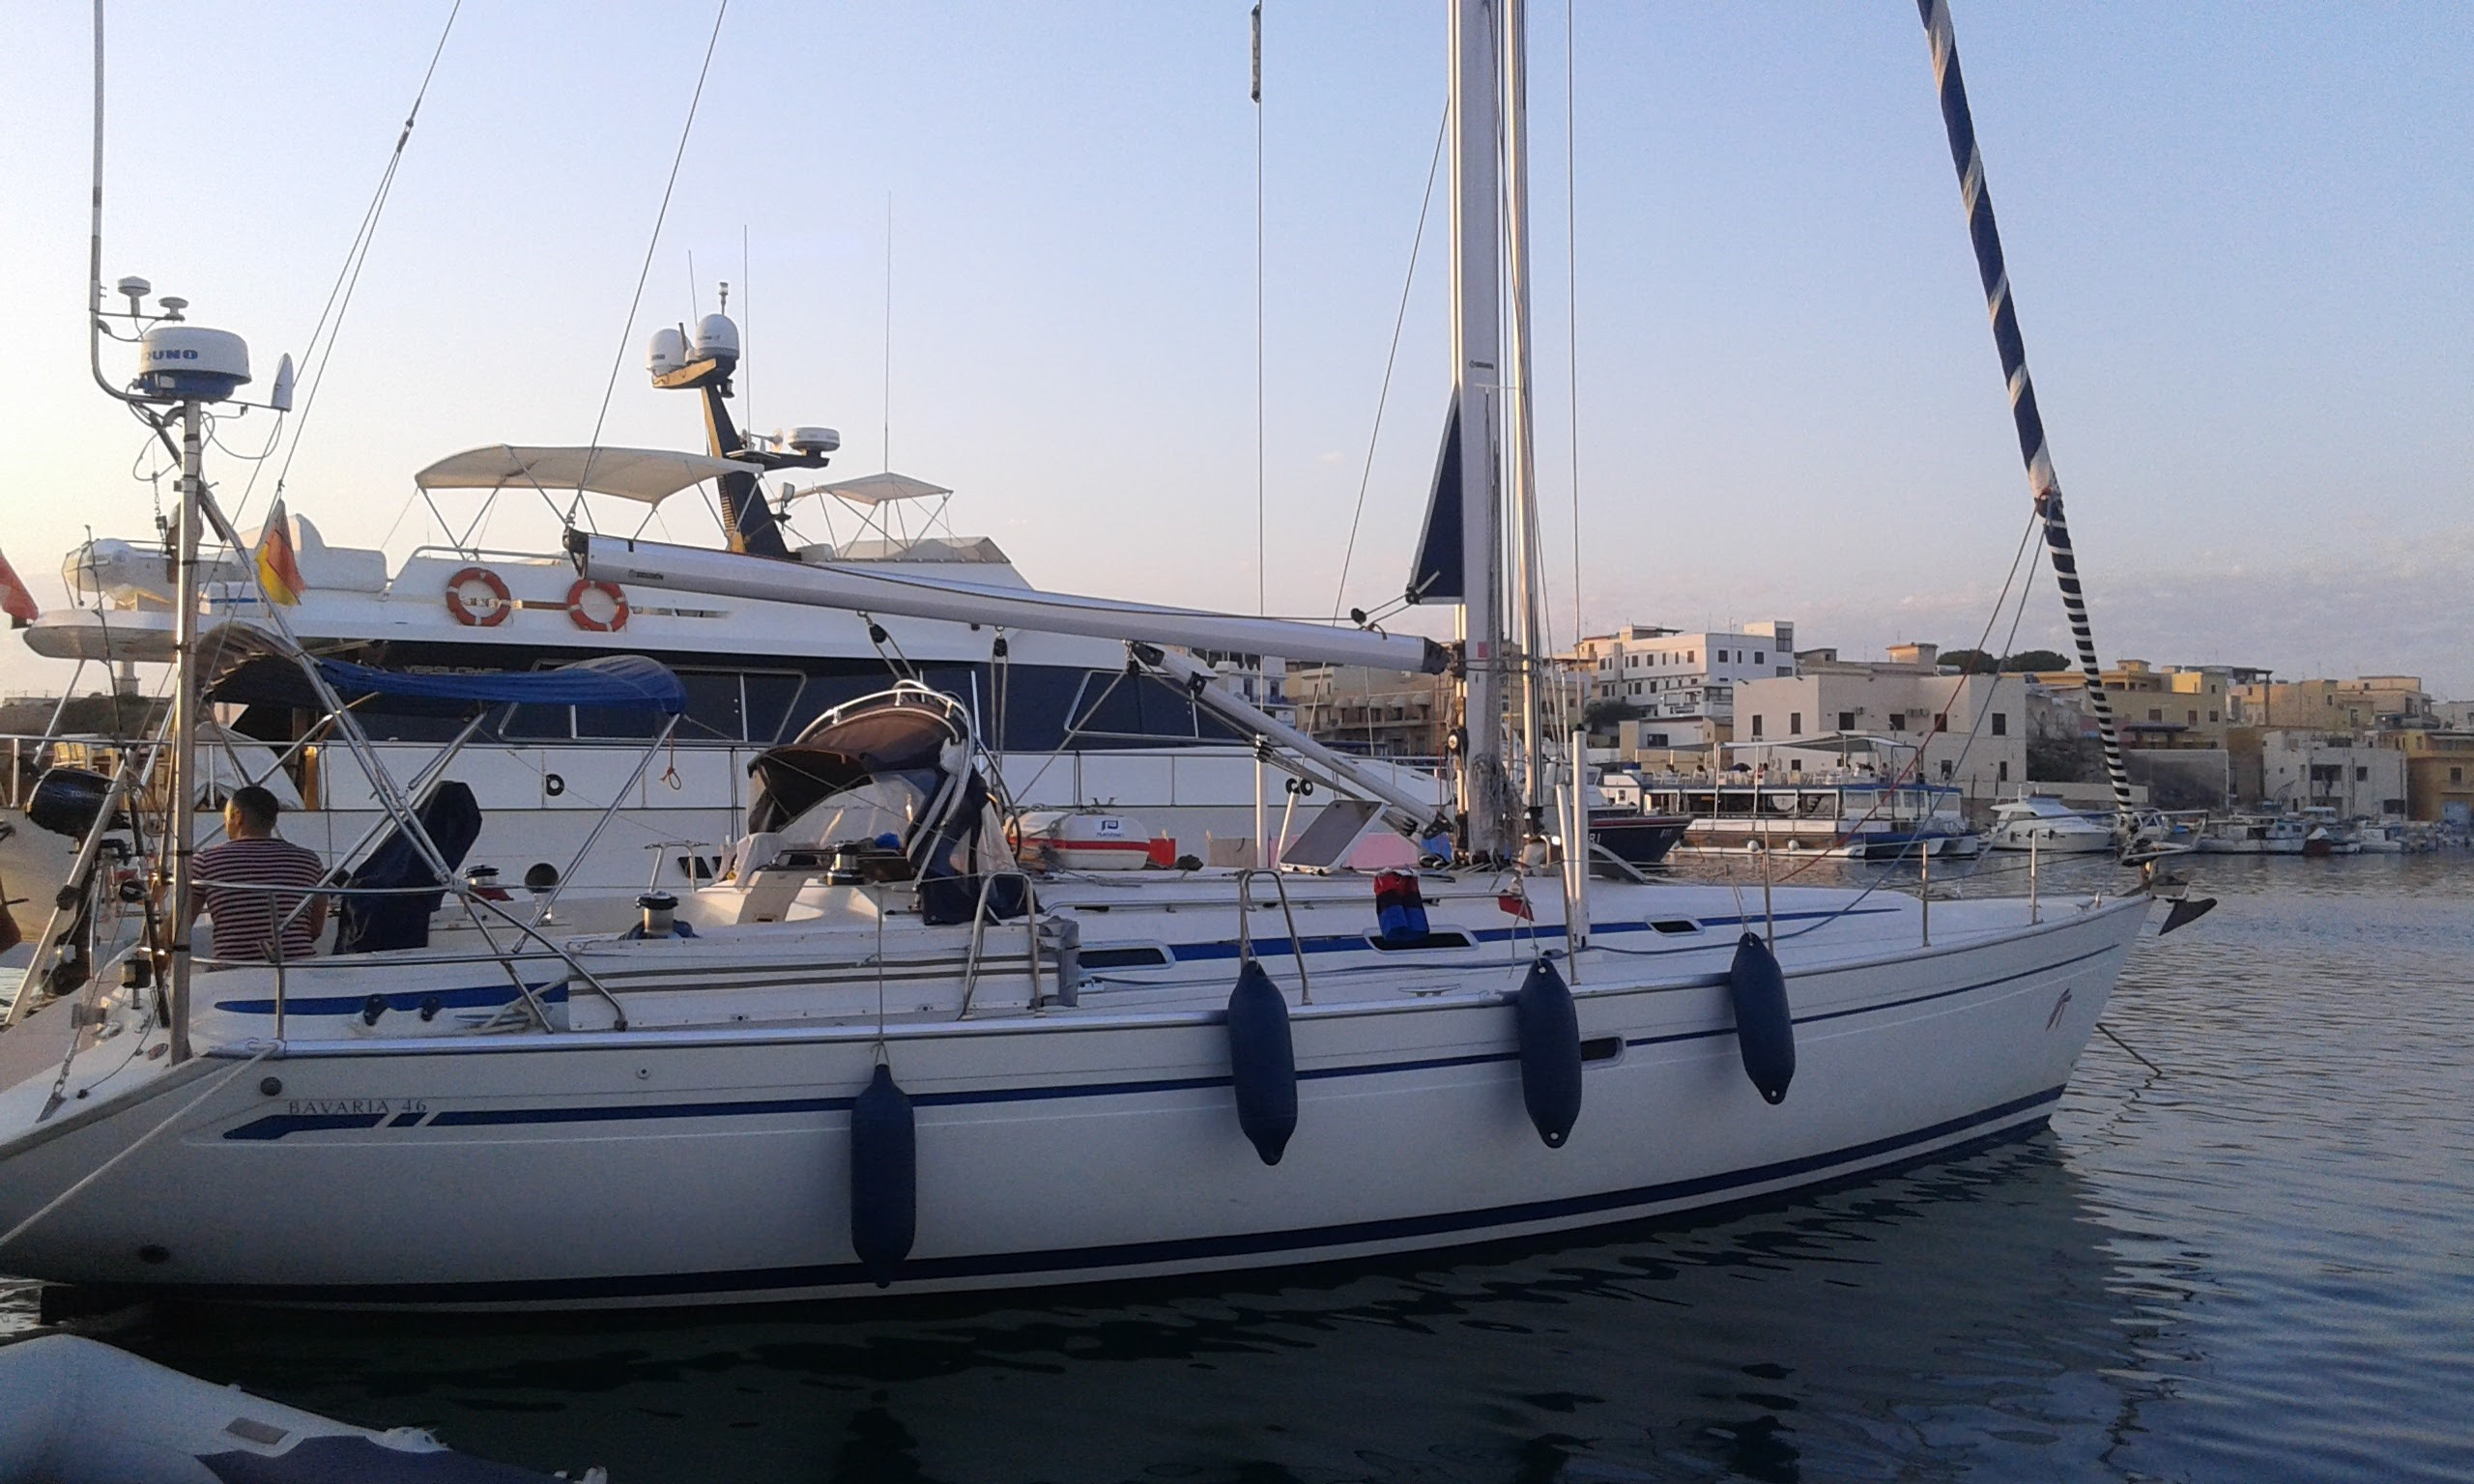 Rent / charter Sailing Yacht for Full Day Tour & Private Charter in Malta & Gozo - Bavaria 46